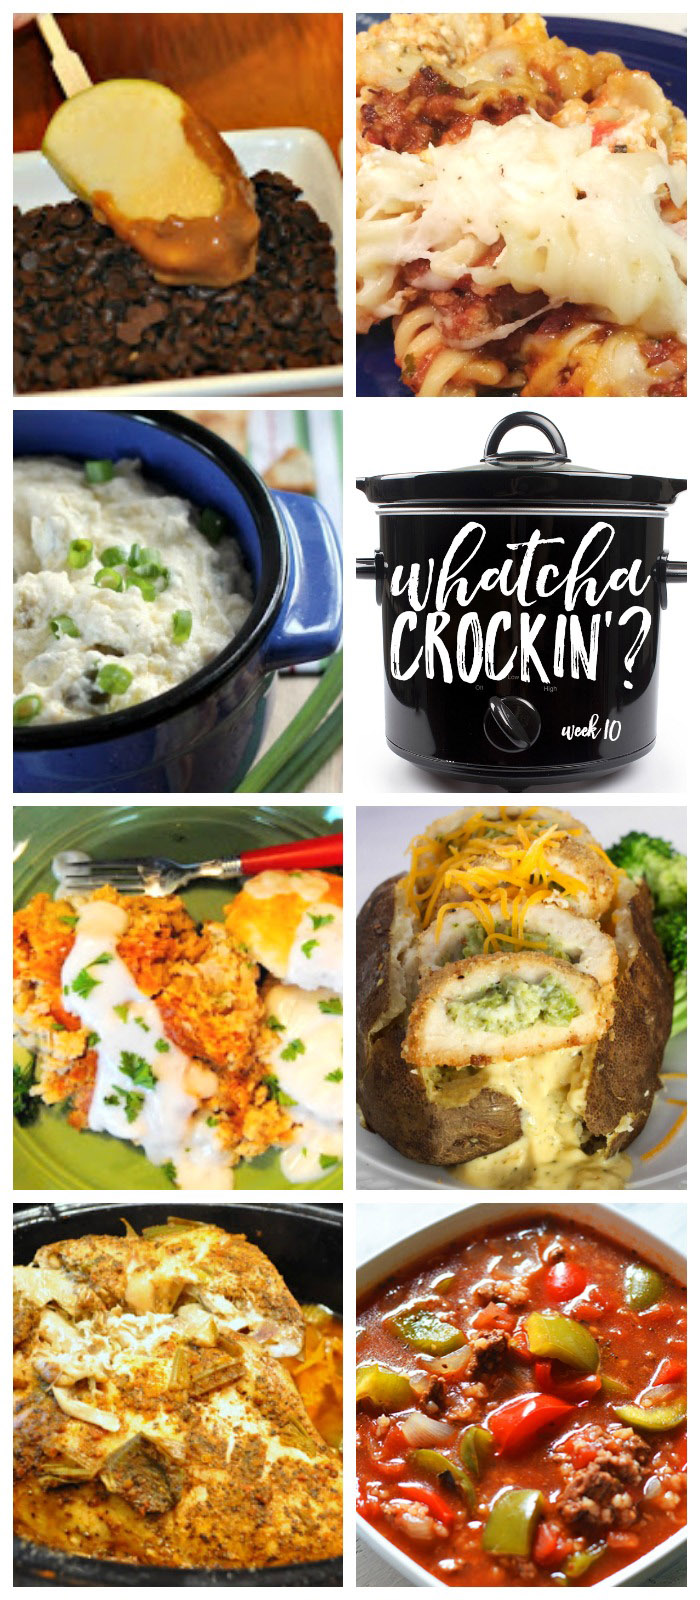 This week's Whatcha Crockin' crock pot recipes include Crock Pot Company Casserole, Hot Jalapeno & Chile Popper Dip, Slow Cooker Stuffed Pepper Soup, Crock Pot Caramel Apple Dippers, Crock Pot Turkey Breast, Chicken Broccoli Cheese Baked Potato, Slow Cooker Country Breakfast With White Pepper Gravy and Biscuits and more!